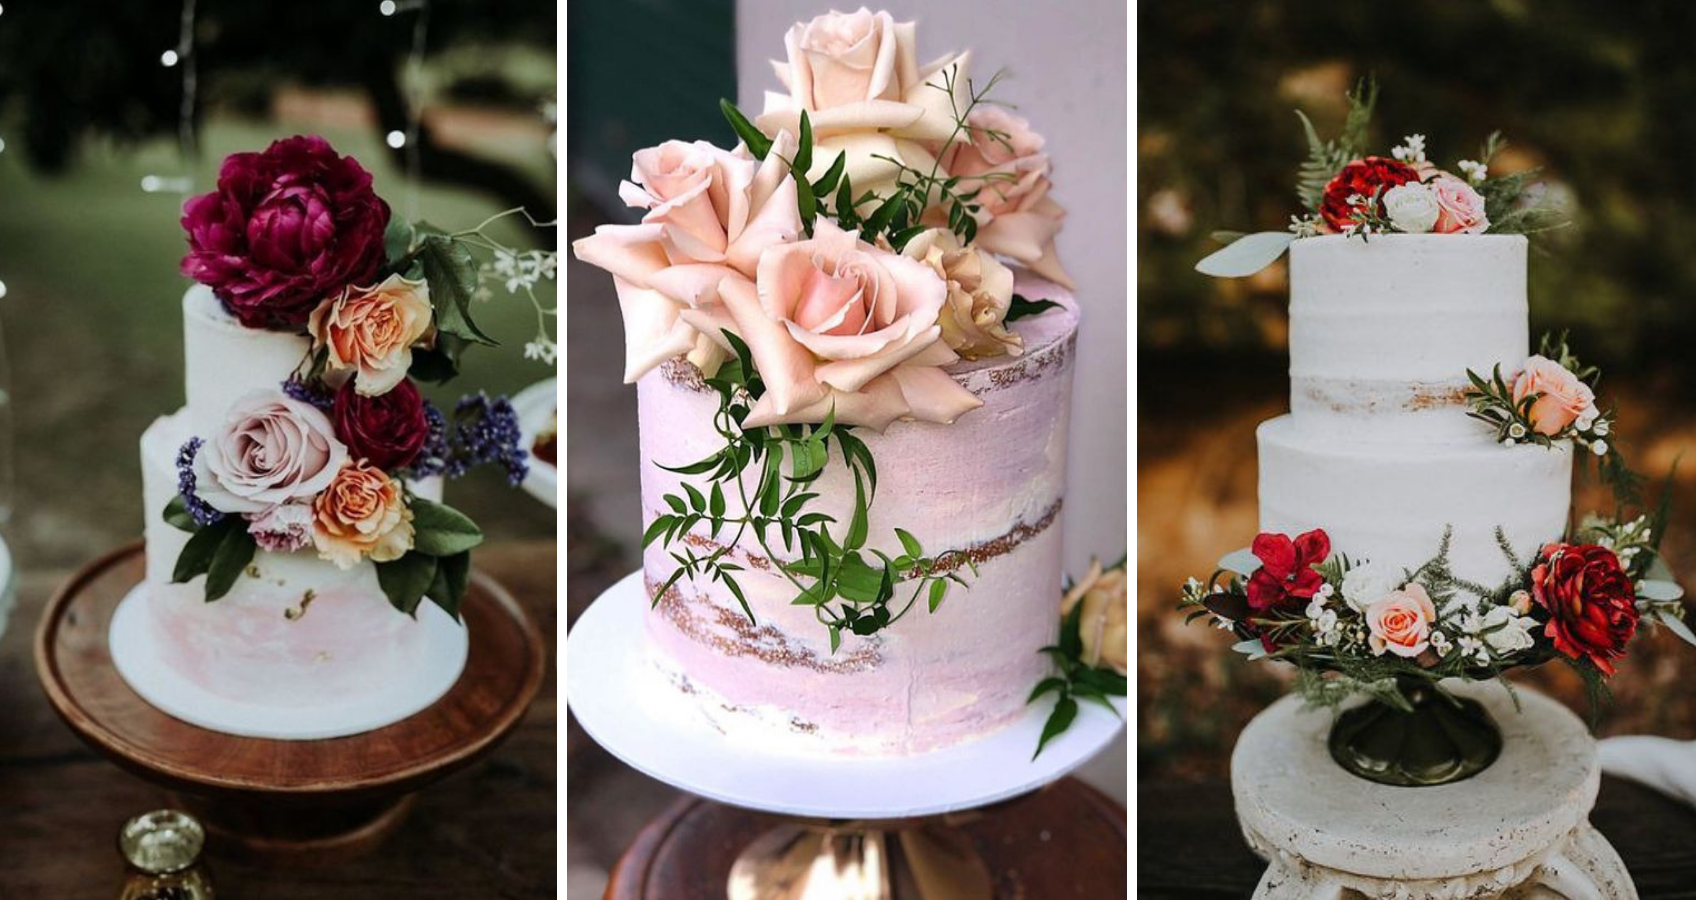 Floral Cakes Never Go Out Of Style...